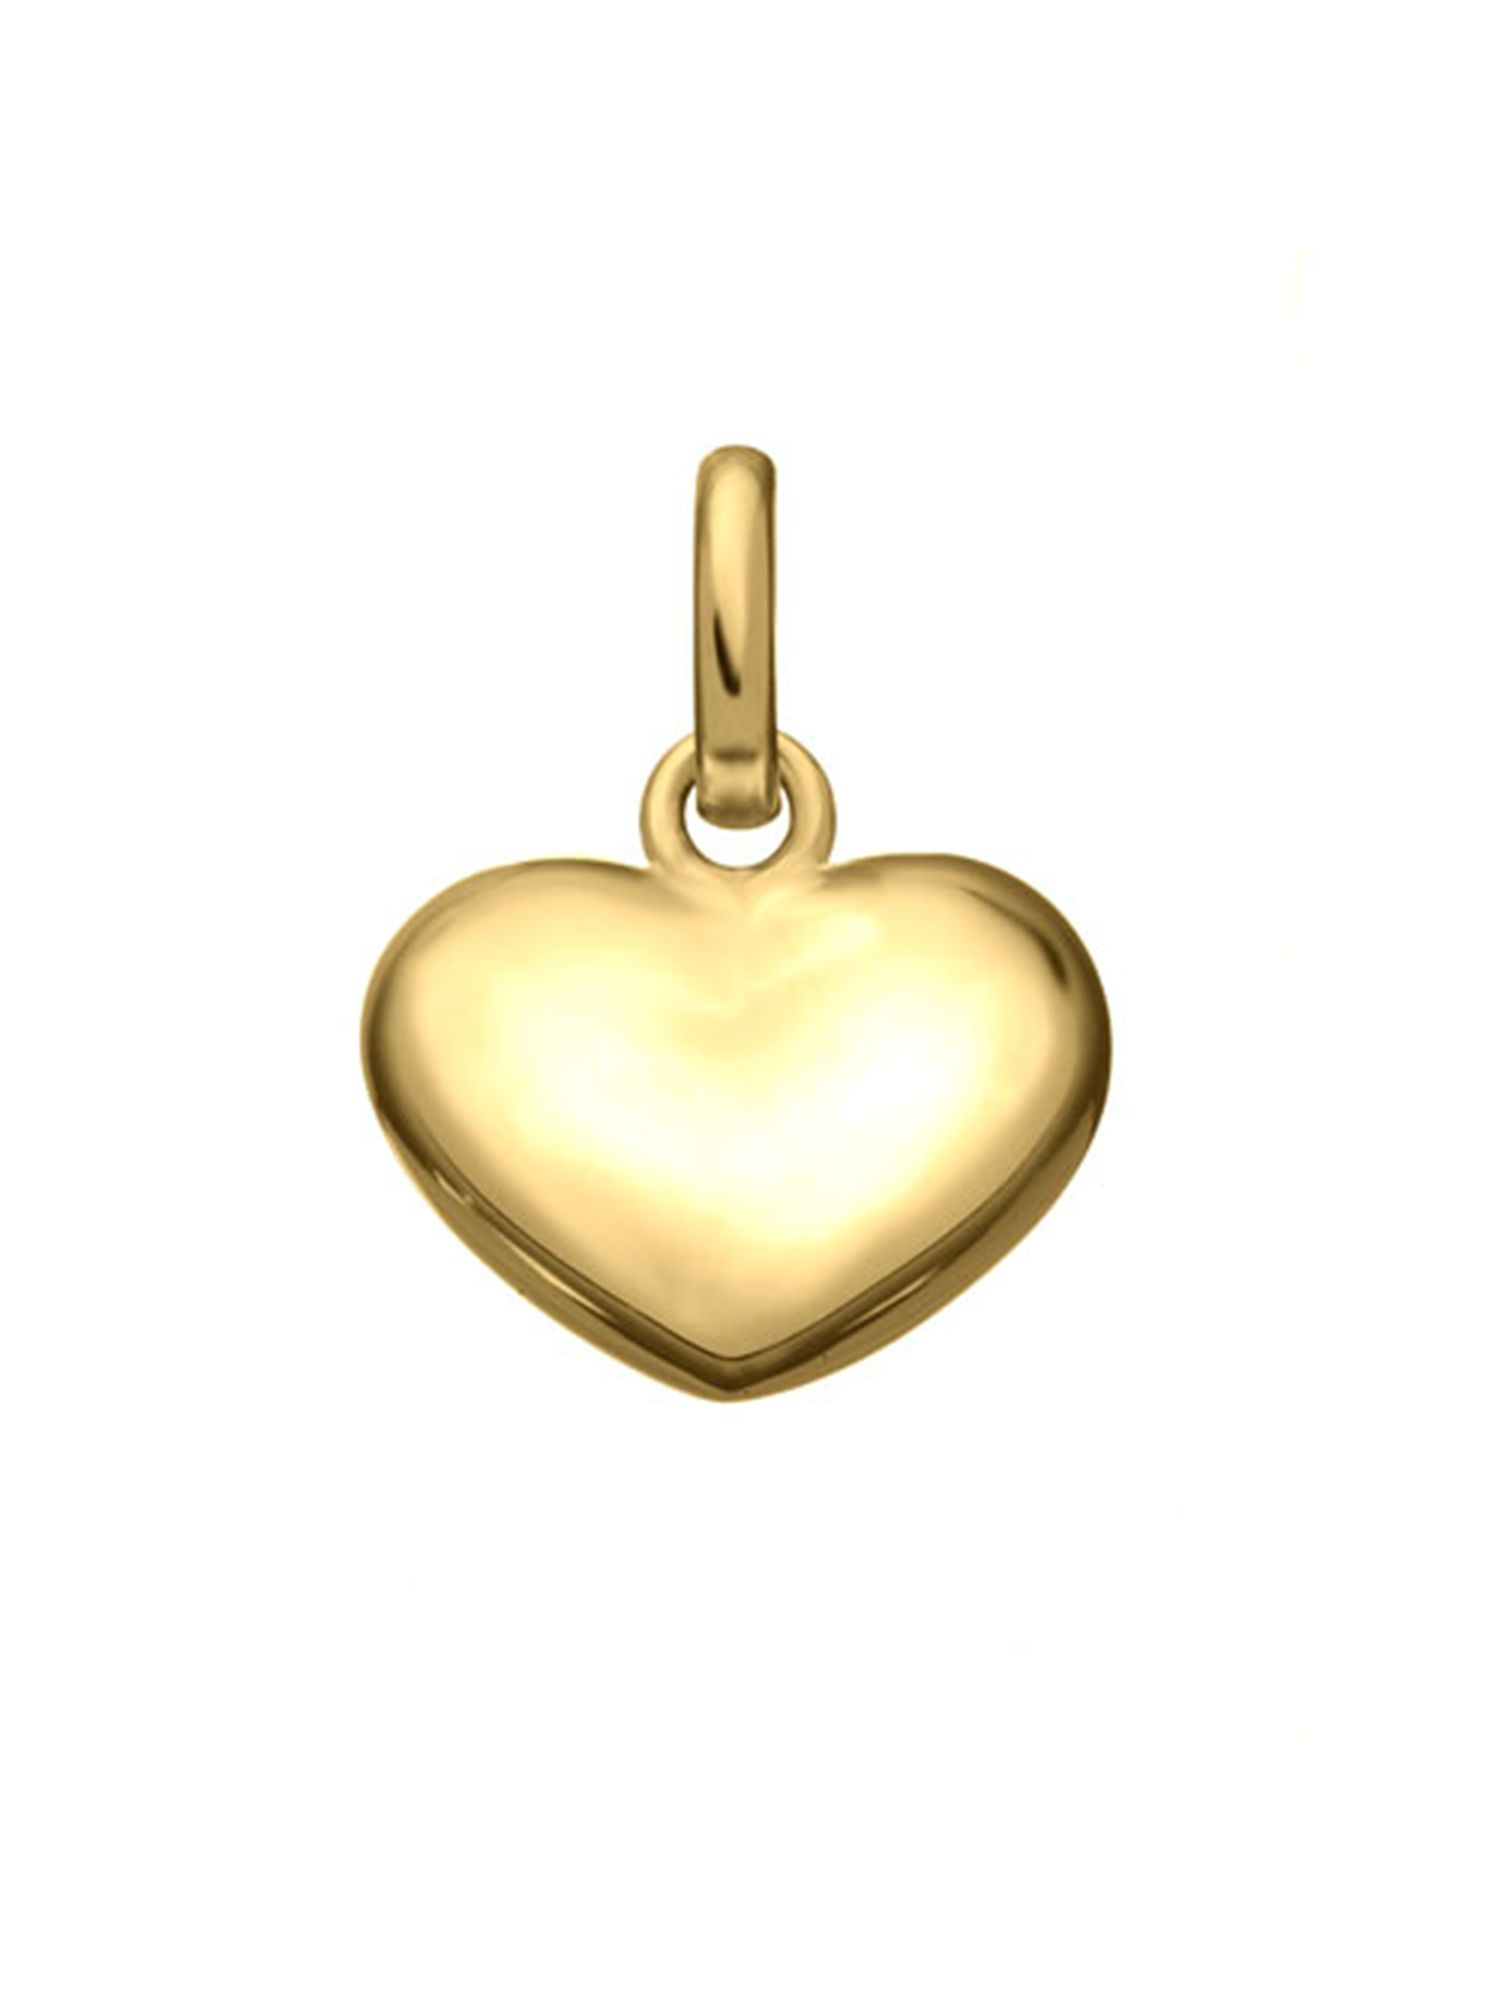 Heart 18ct Gold Charm